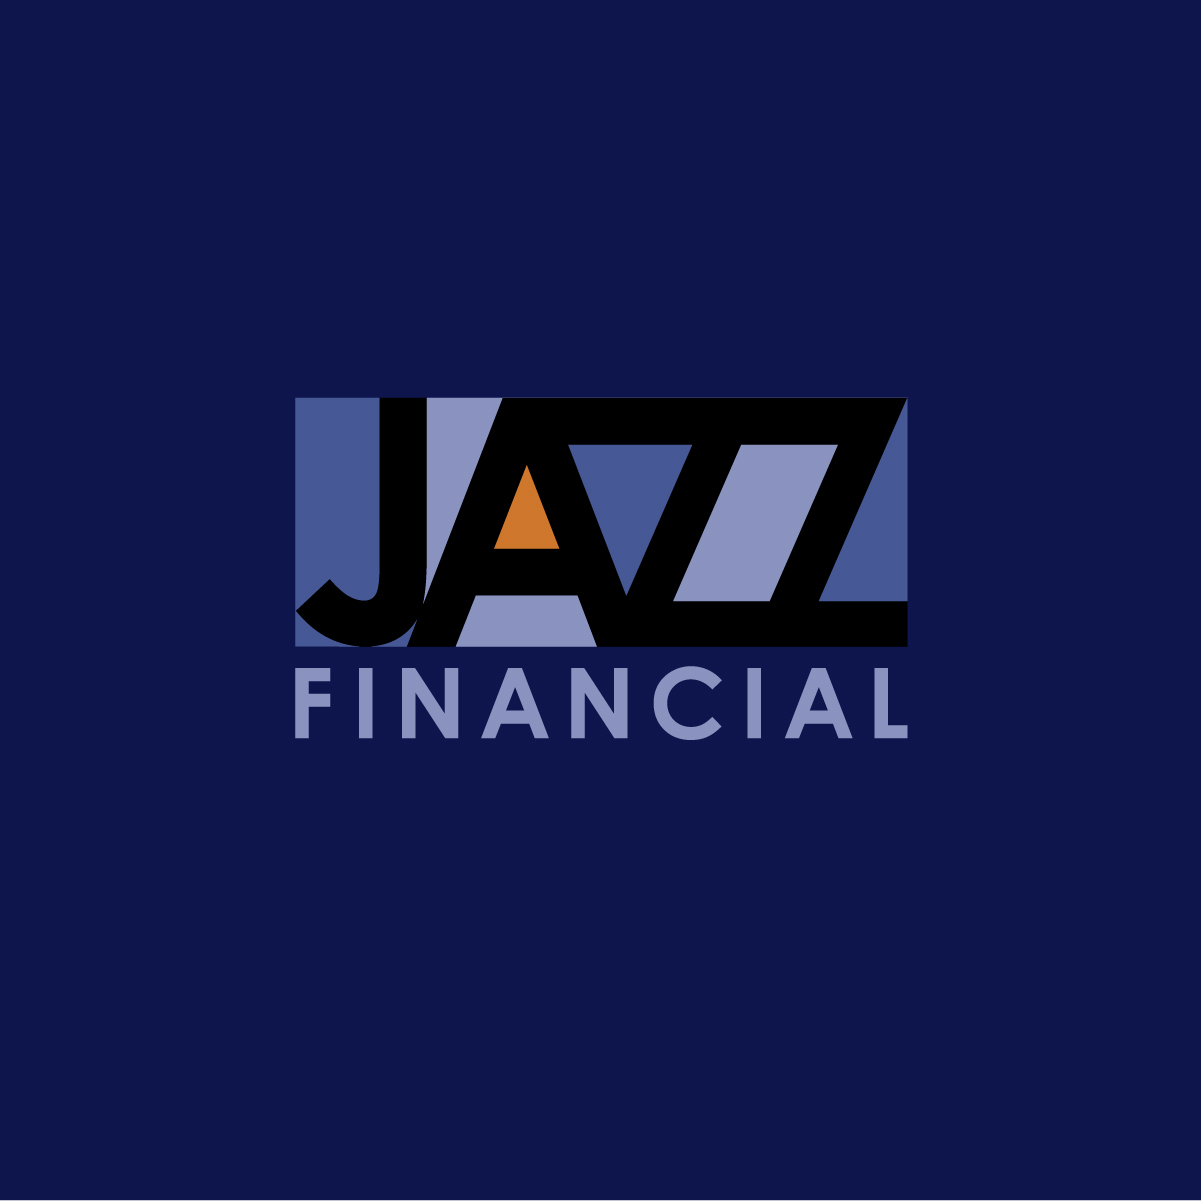 Simeon-Goa_Victoria-Canada_Graphic-Design_Illustration-Jazz-Financial_Image.jpg